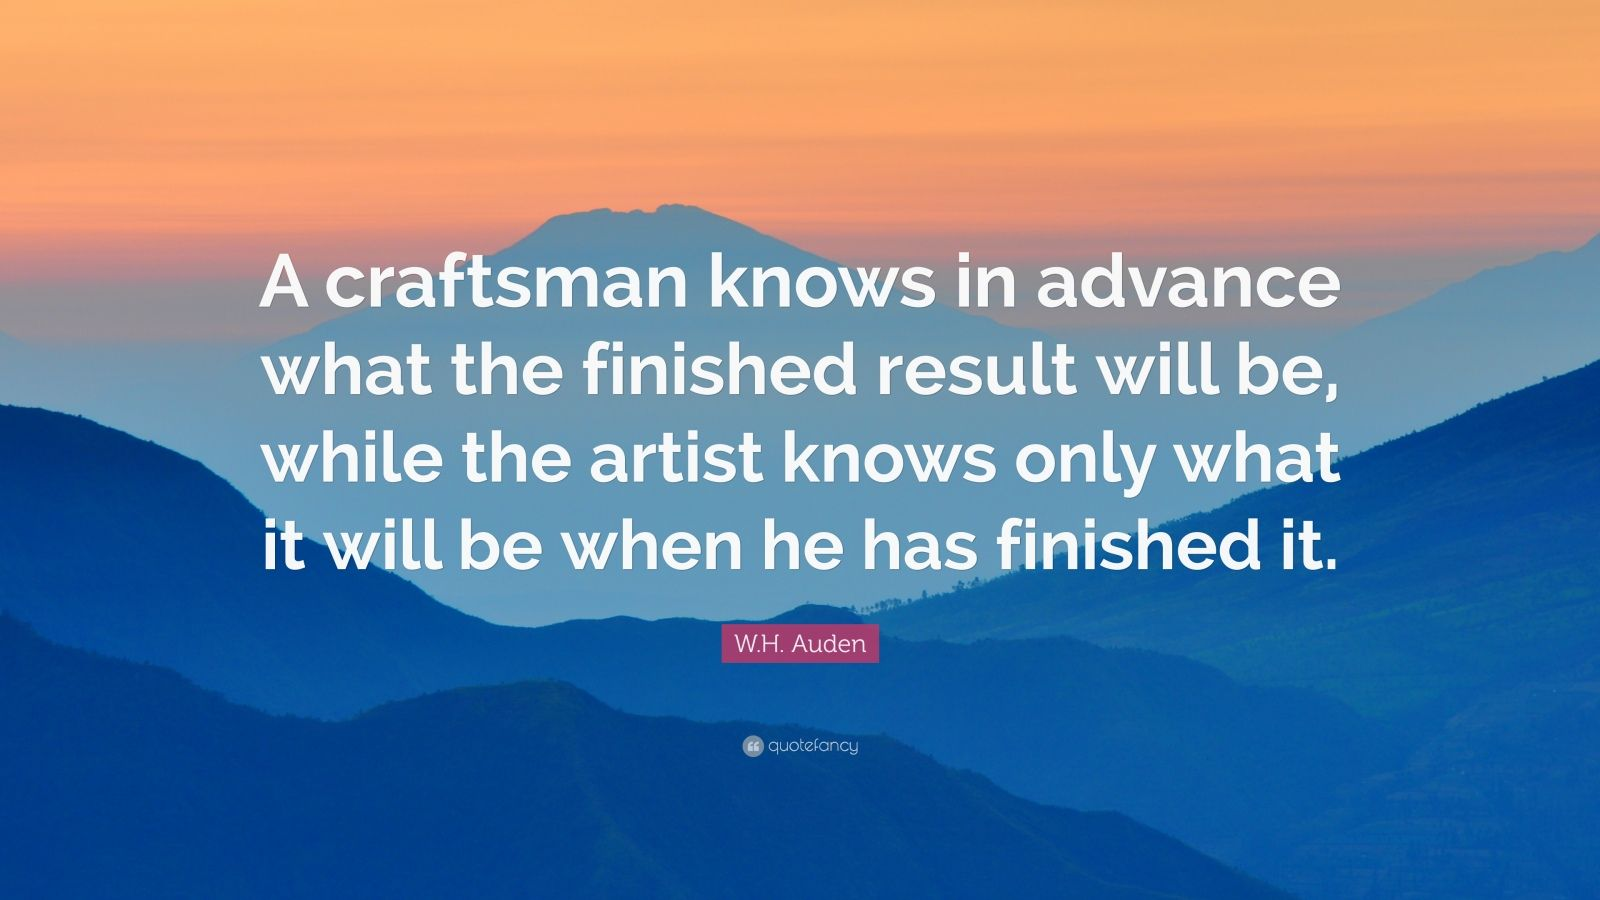 """W.H. Auden Quote: """"A craftsman knows in advance what the finished result will be, while the artist knows only what it will be when he has finished it."""""""